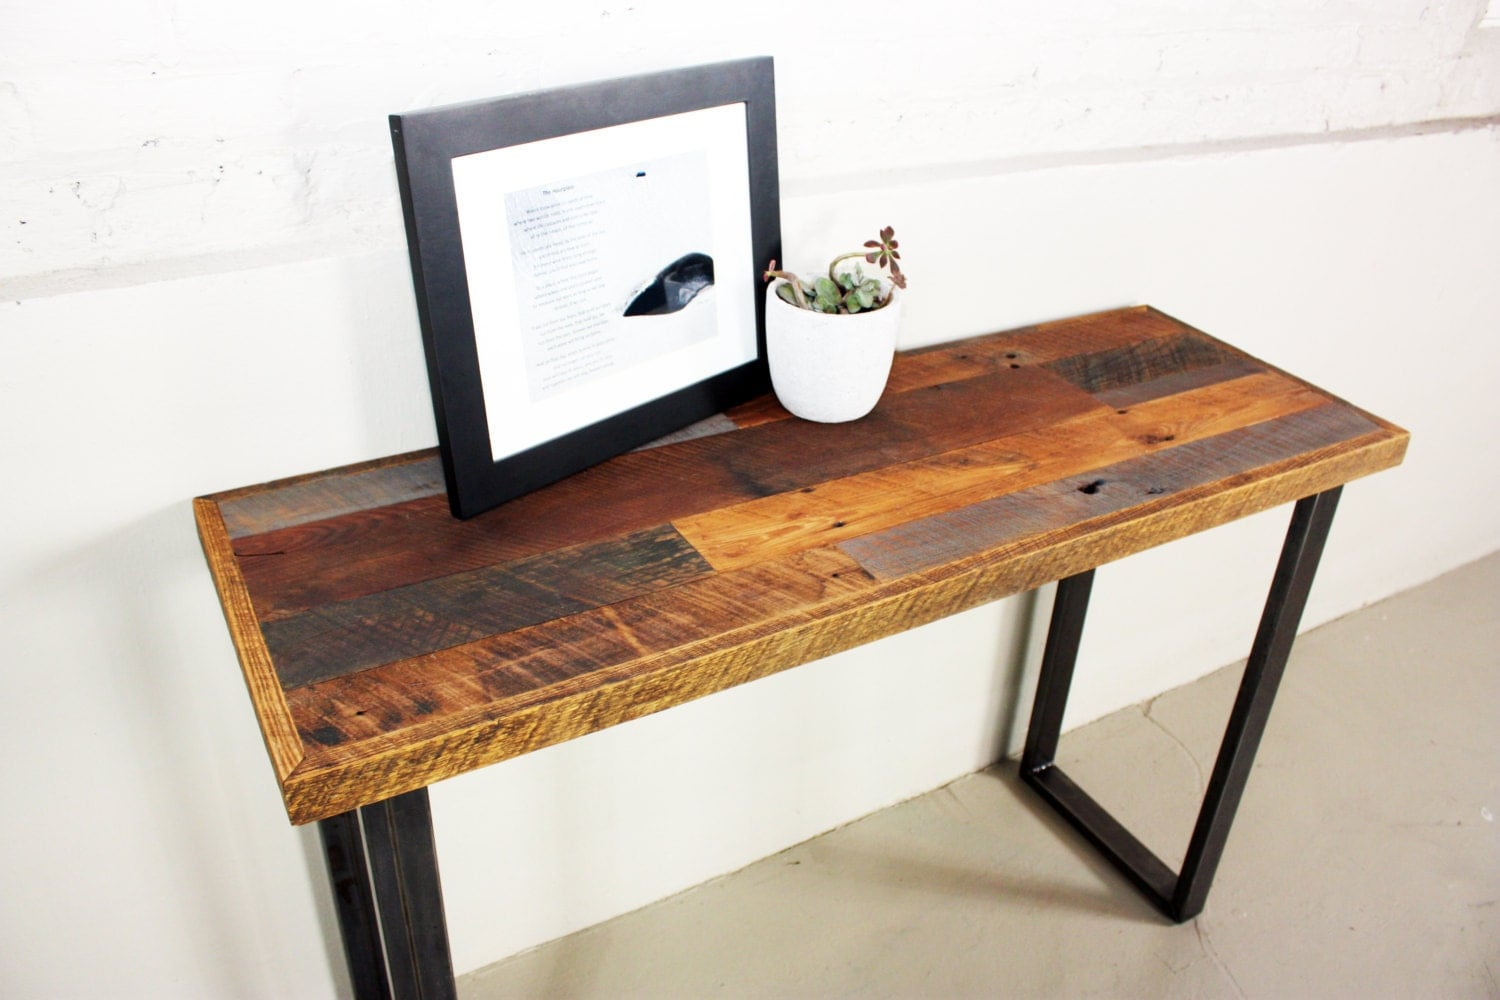 Foyer Table Name : Reclaimed wood console table patchwork entryway hall